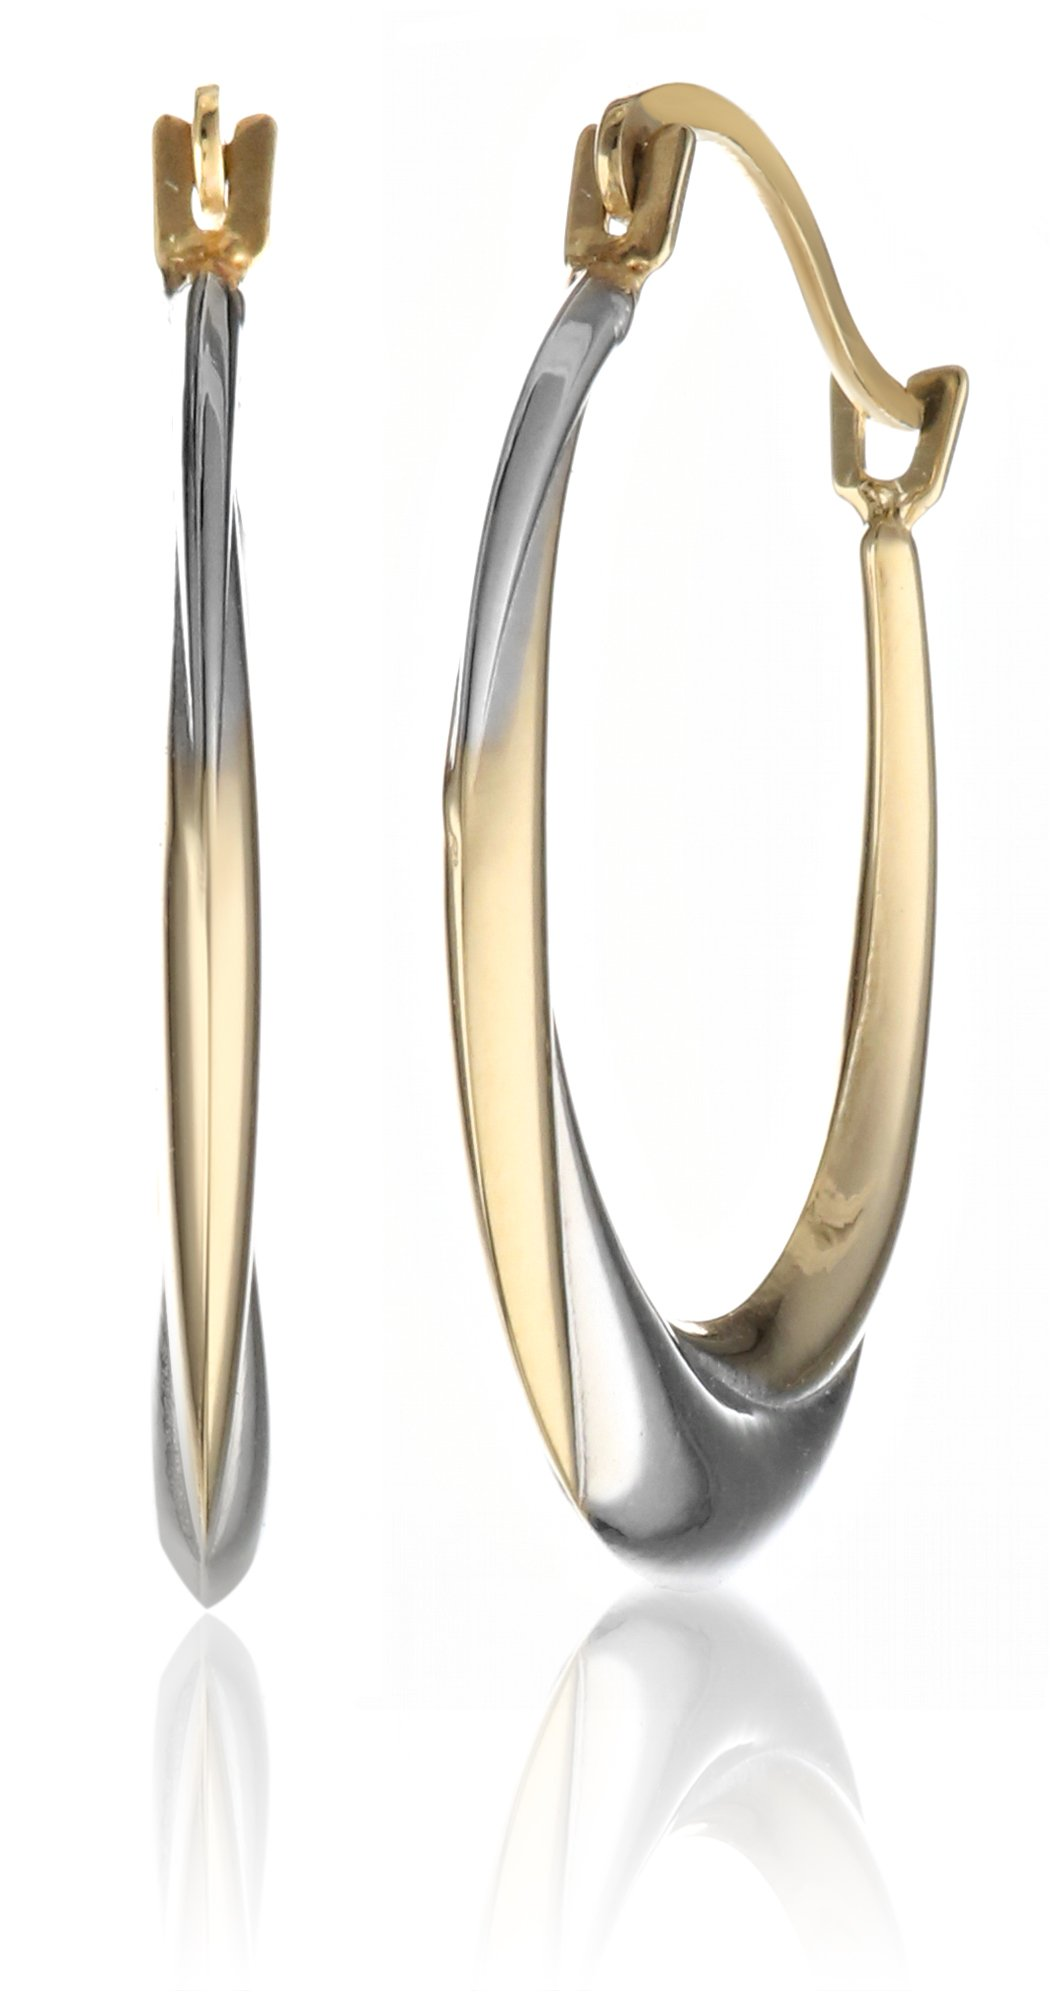 10k Yellow and White Gold Stampato Hoop Earrings